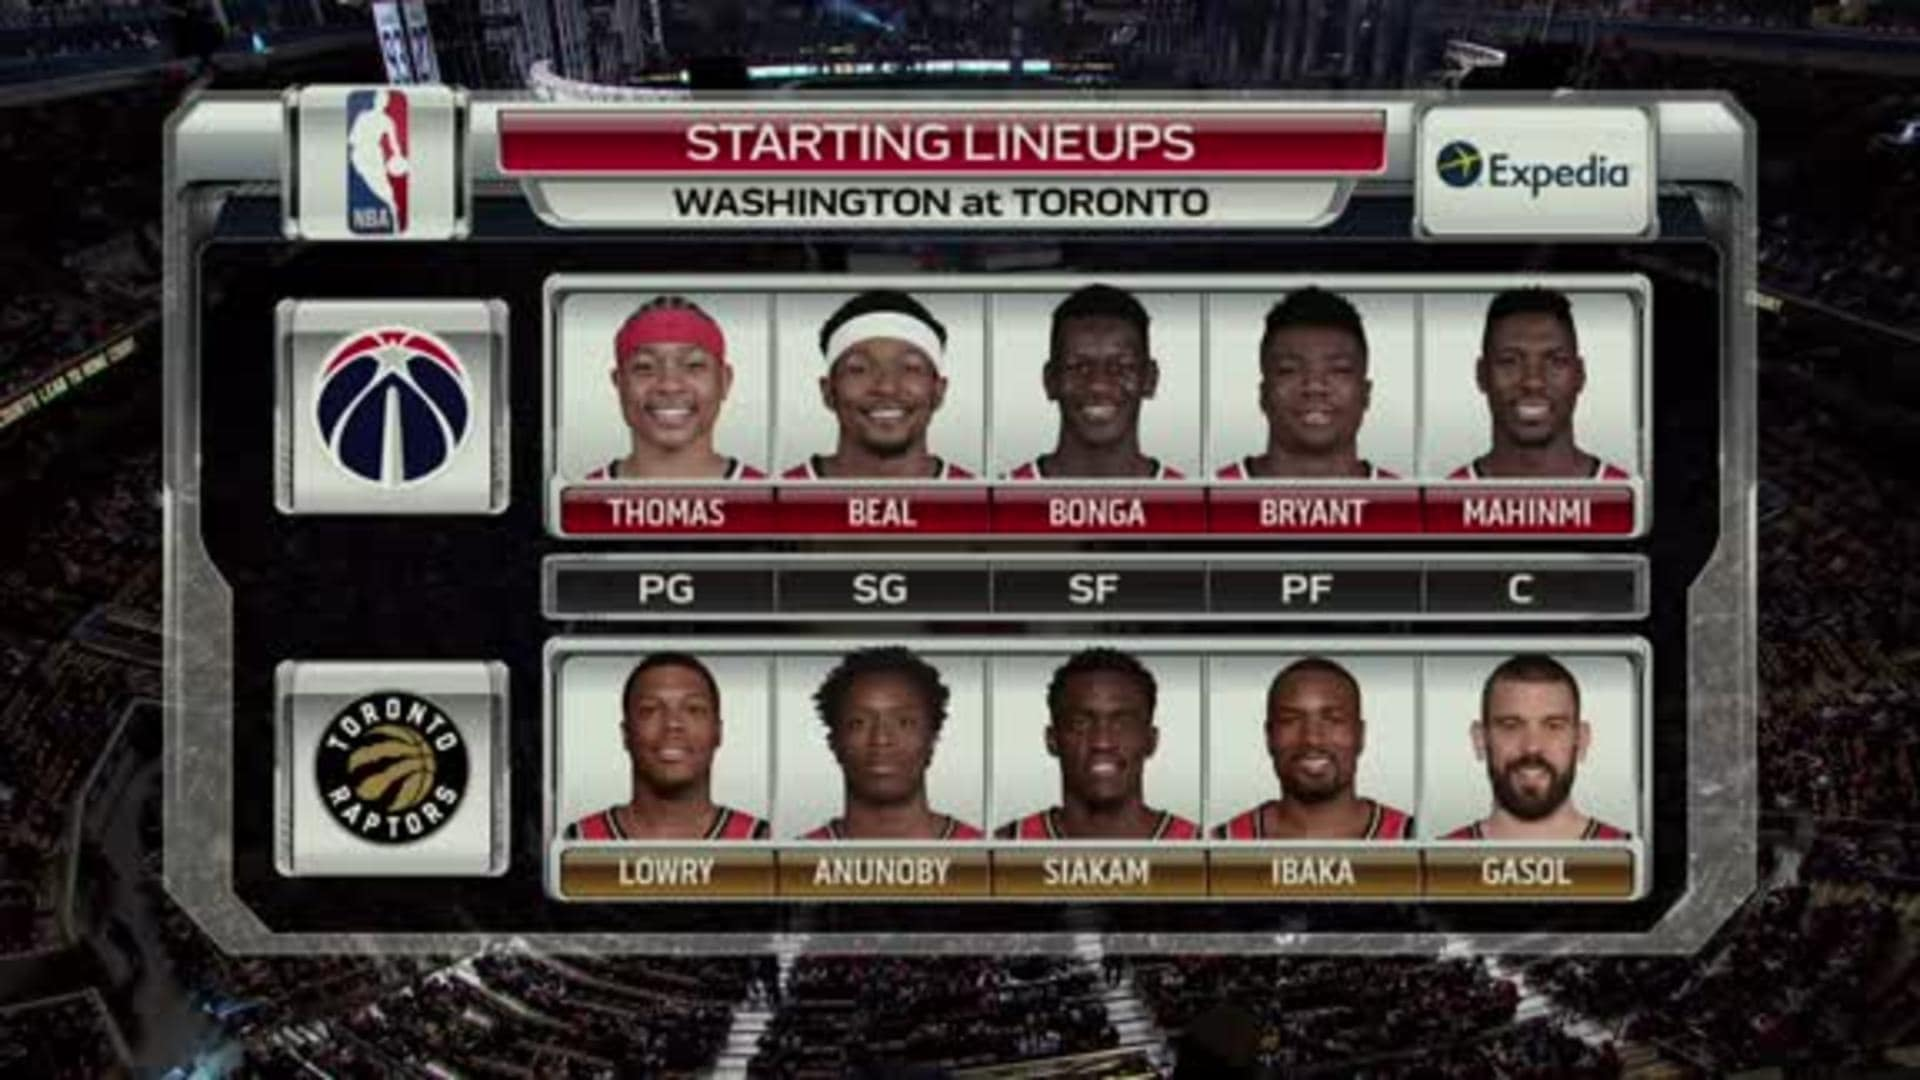 Game Highlights: Raptors vs Wizards - January 17, 2020